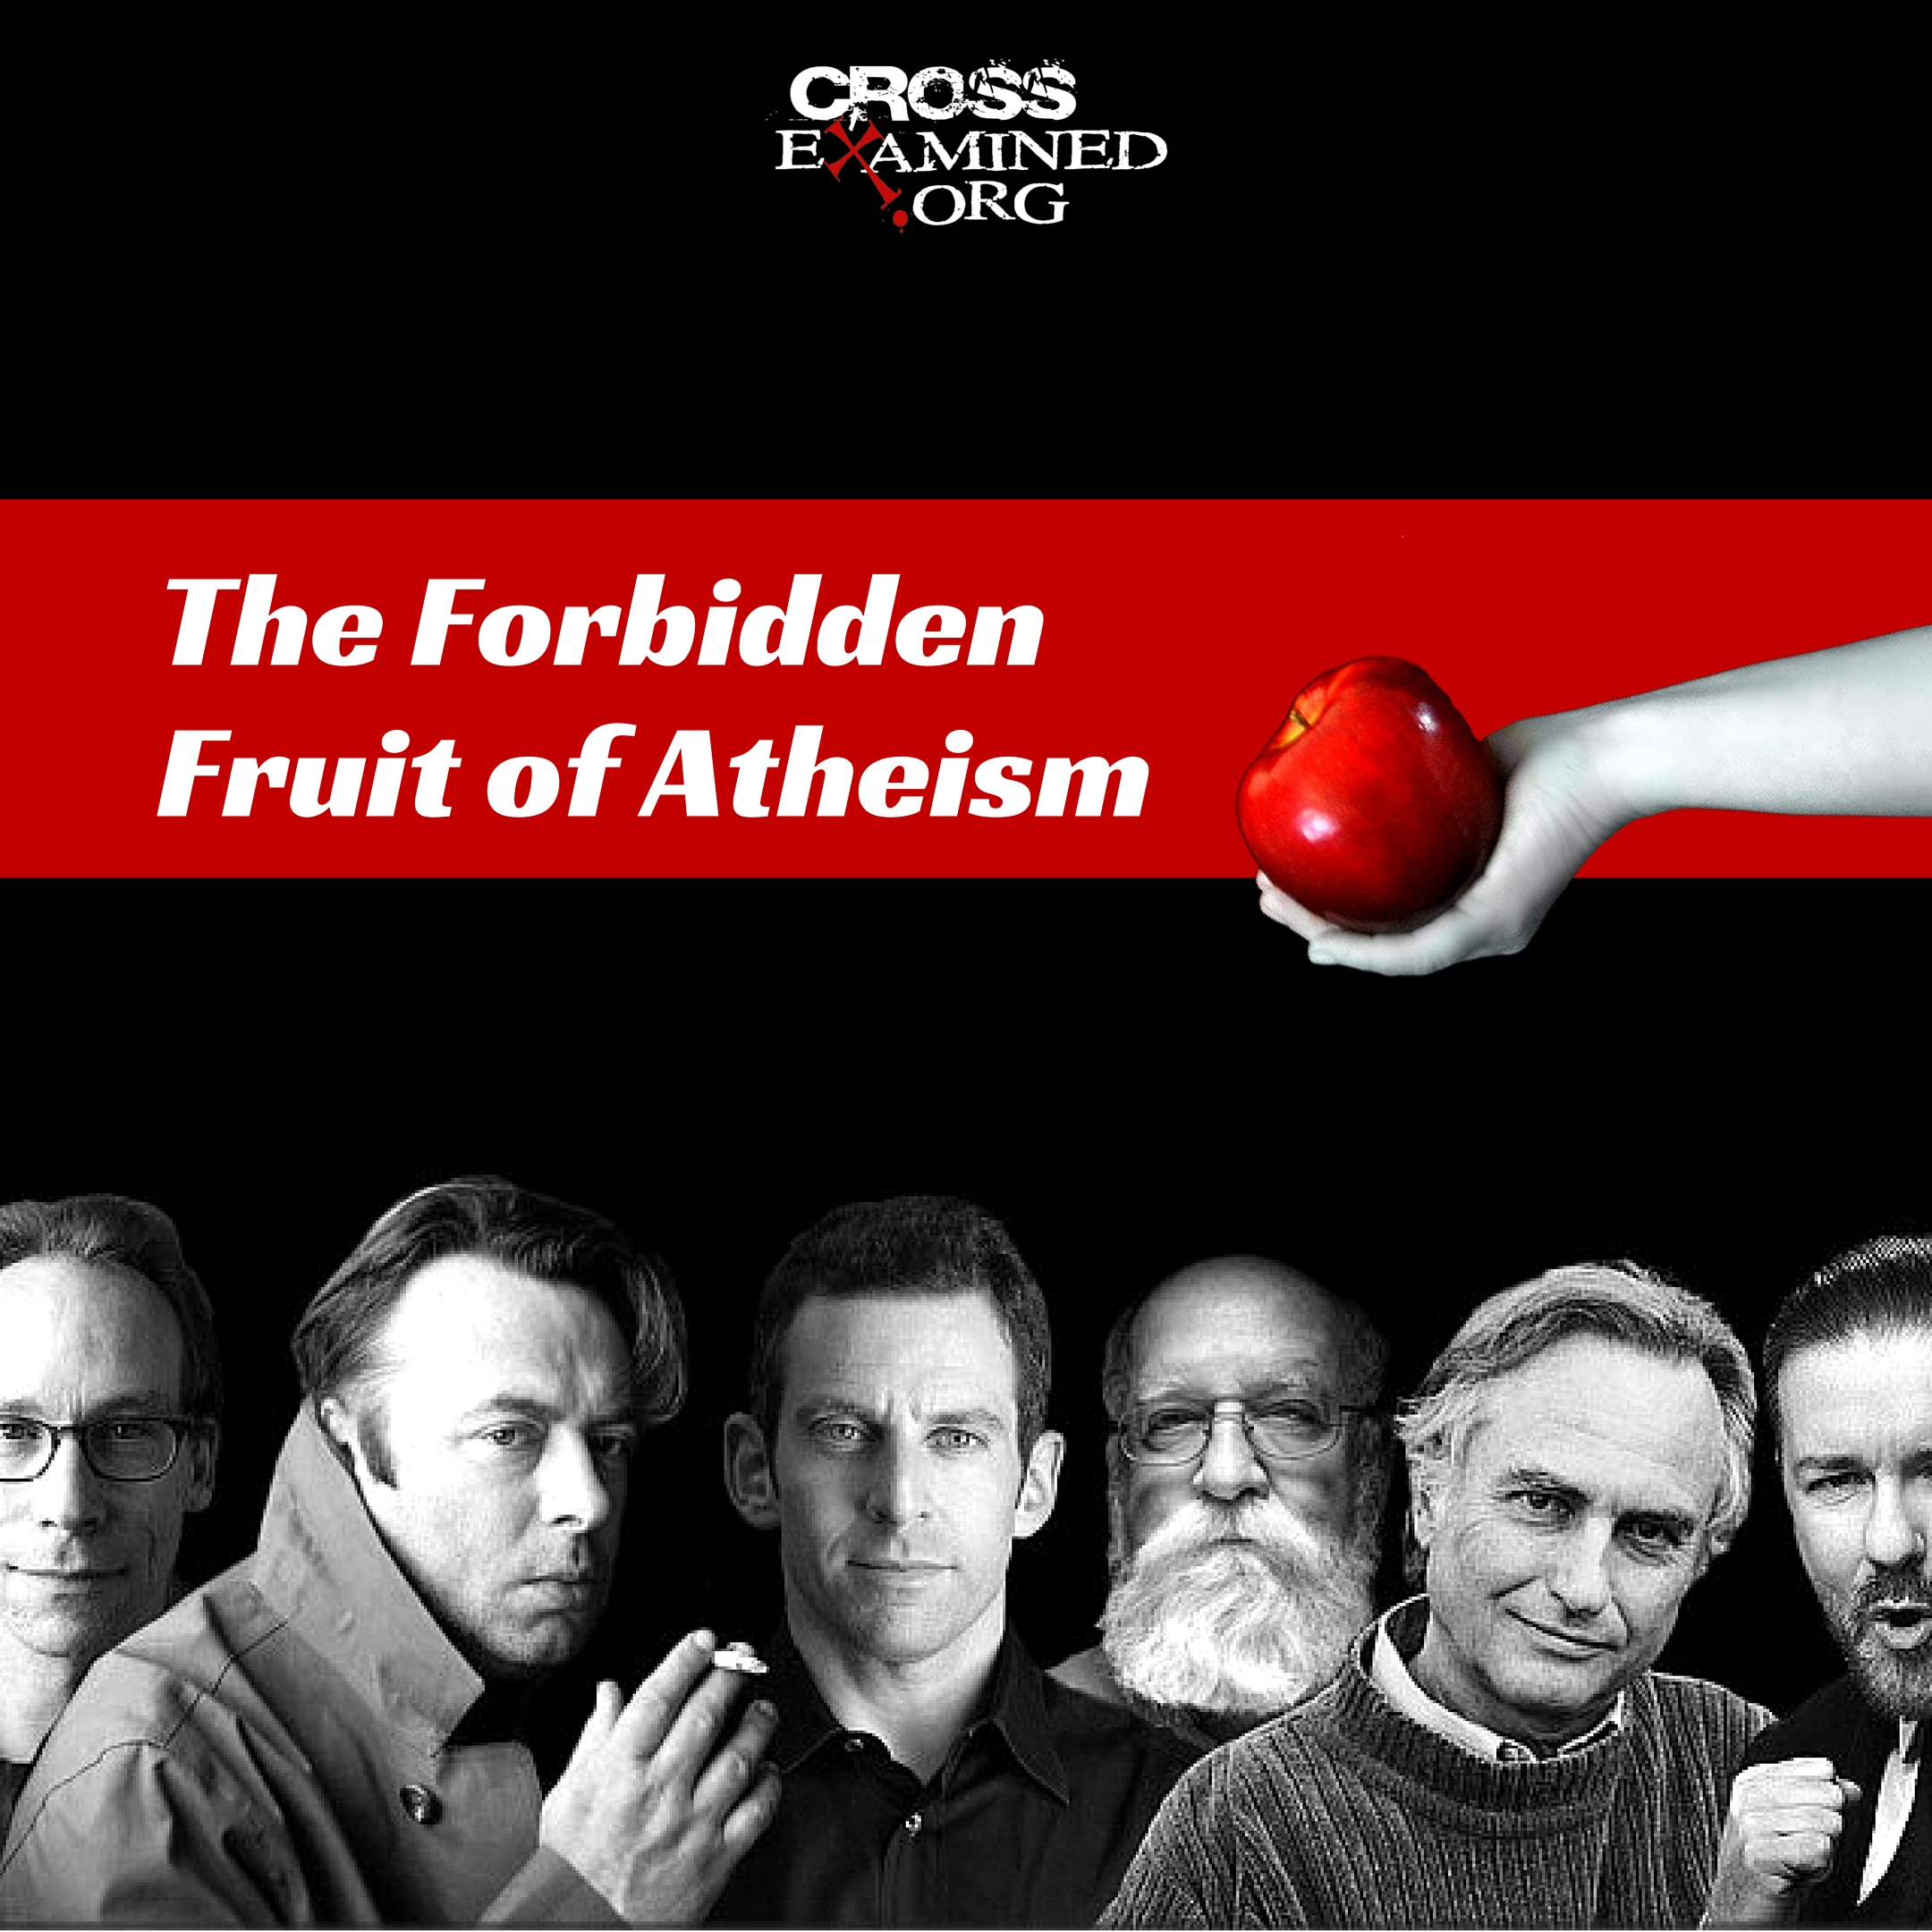 The Forbidden Fruit of Atheism; What question they cannot ask?